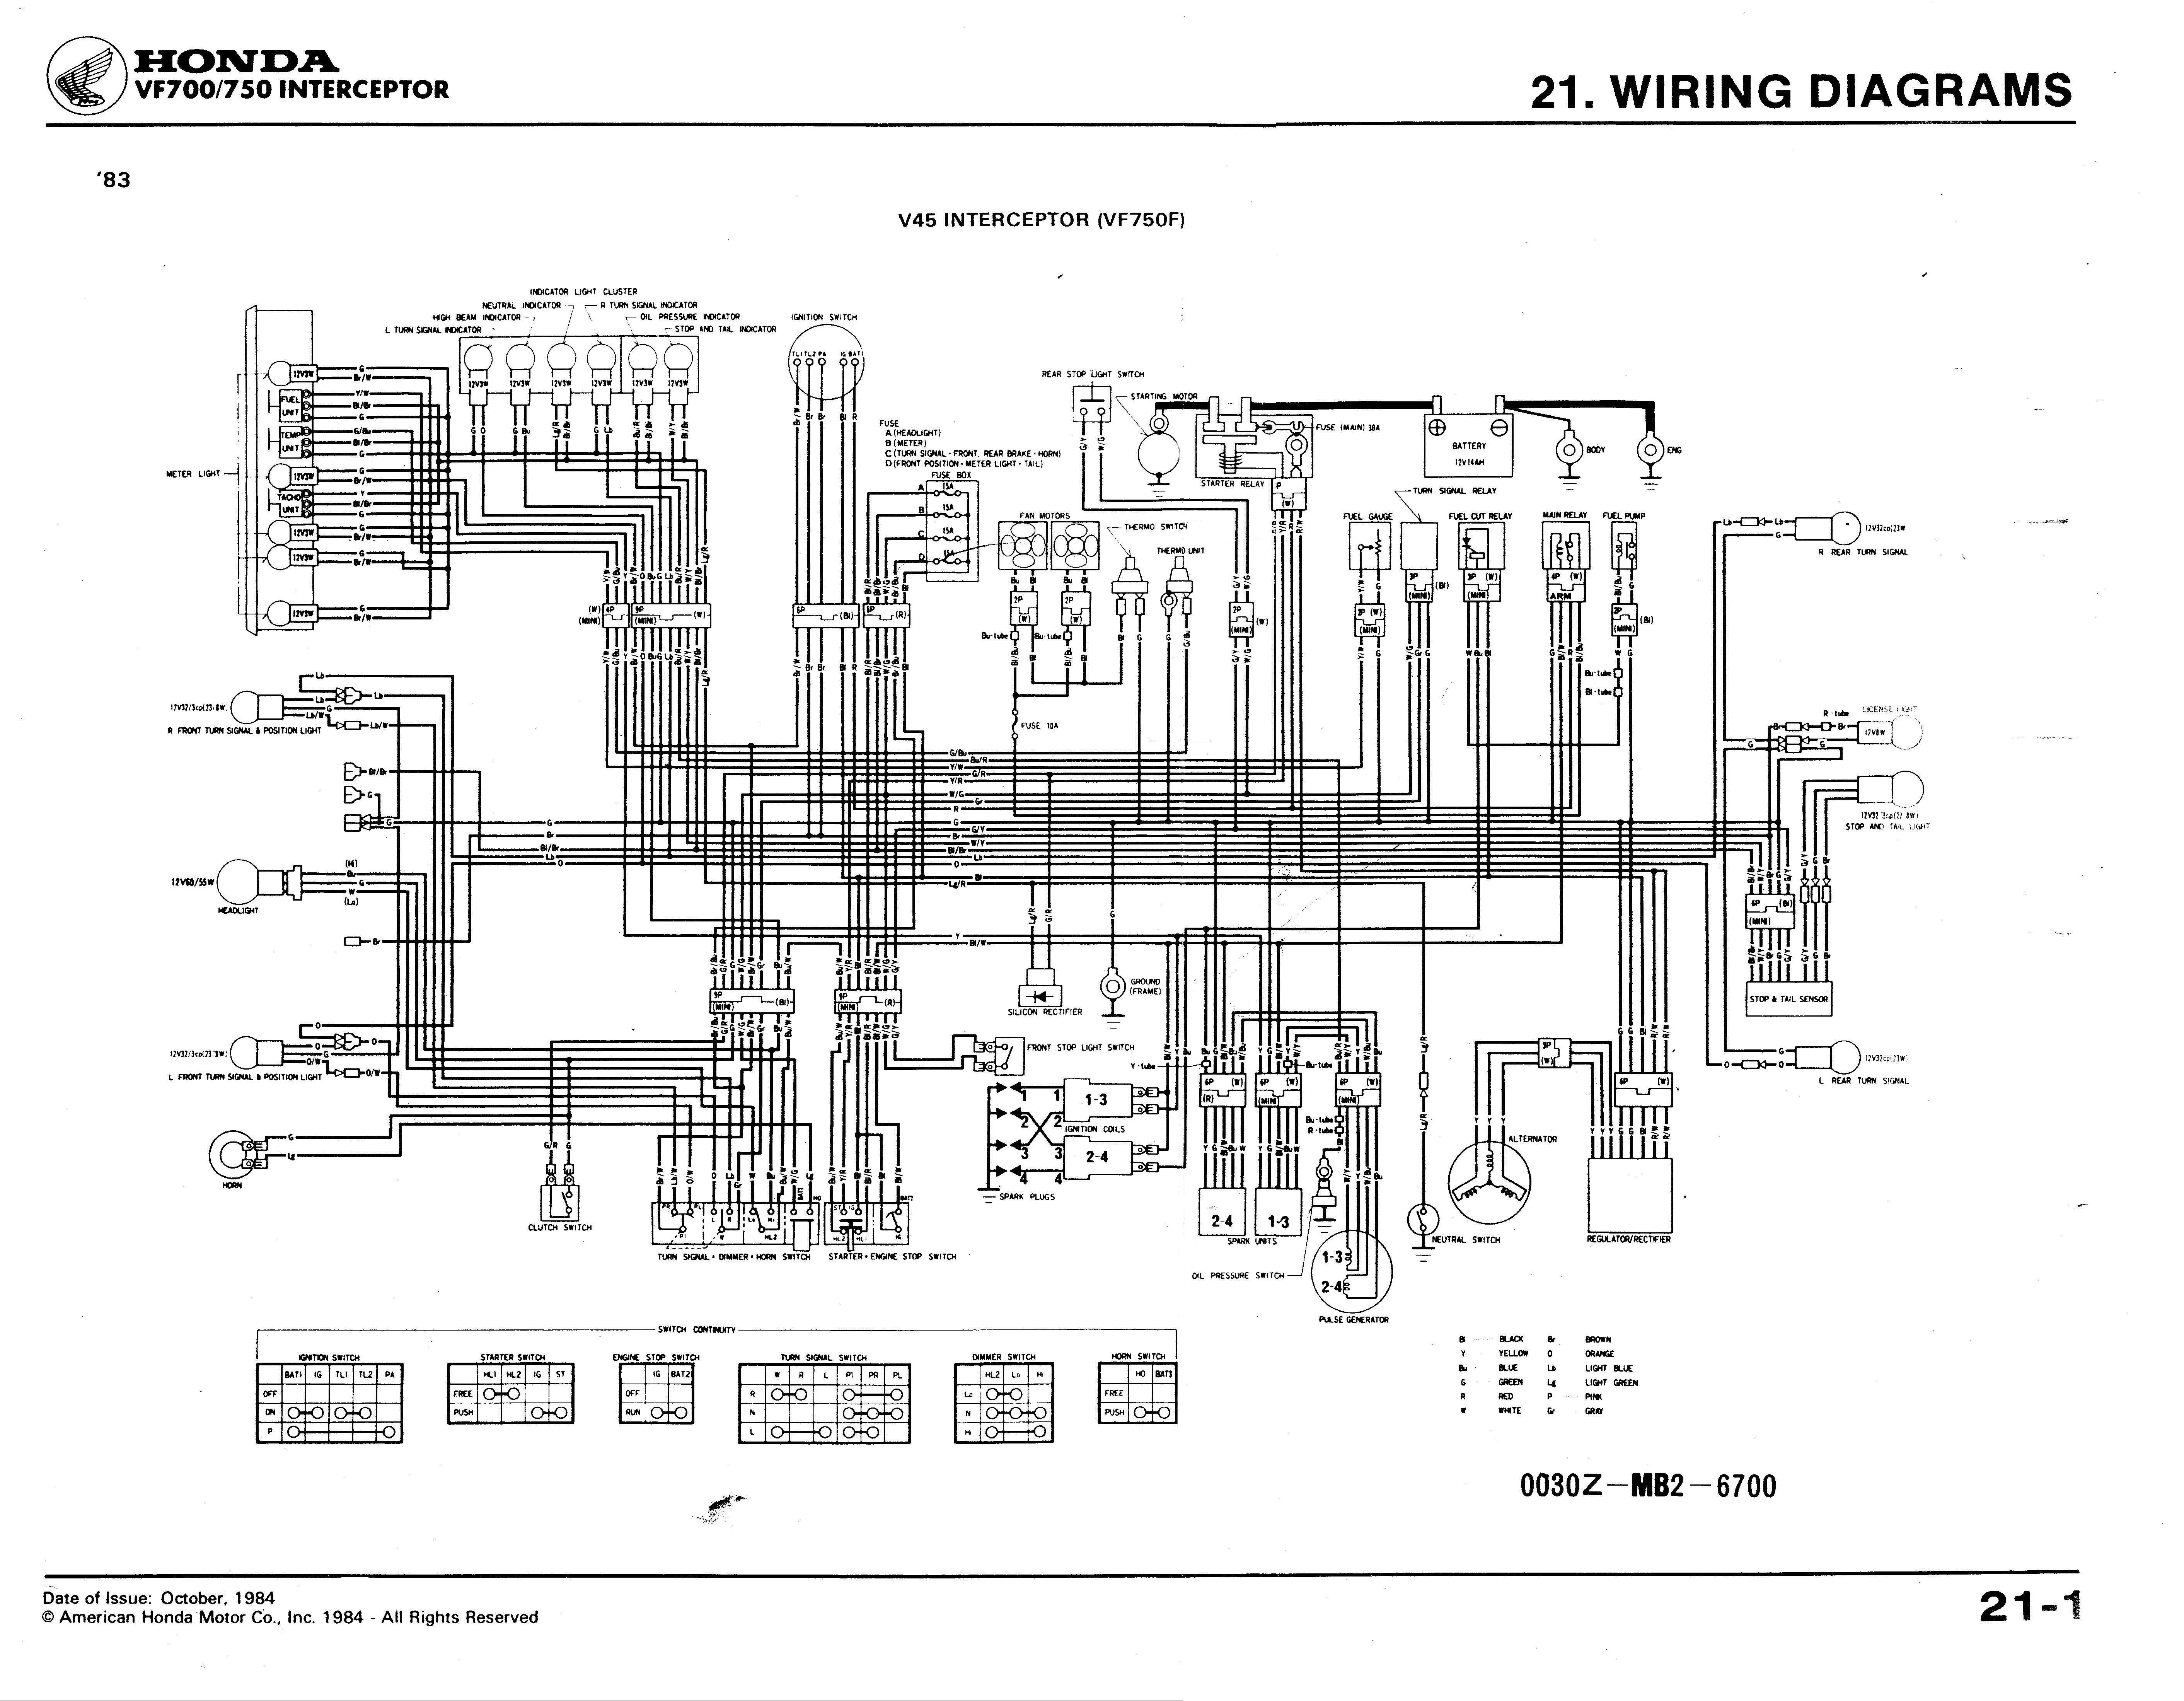 Wire Diagram 1985 Yamaha Virago Simple Guide About Wiring 1983 Honda C70 Diagrams